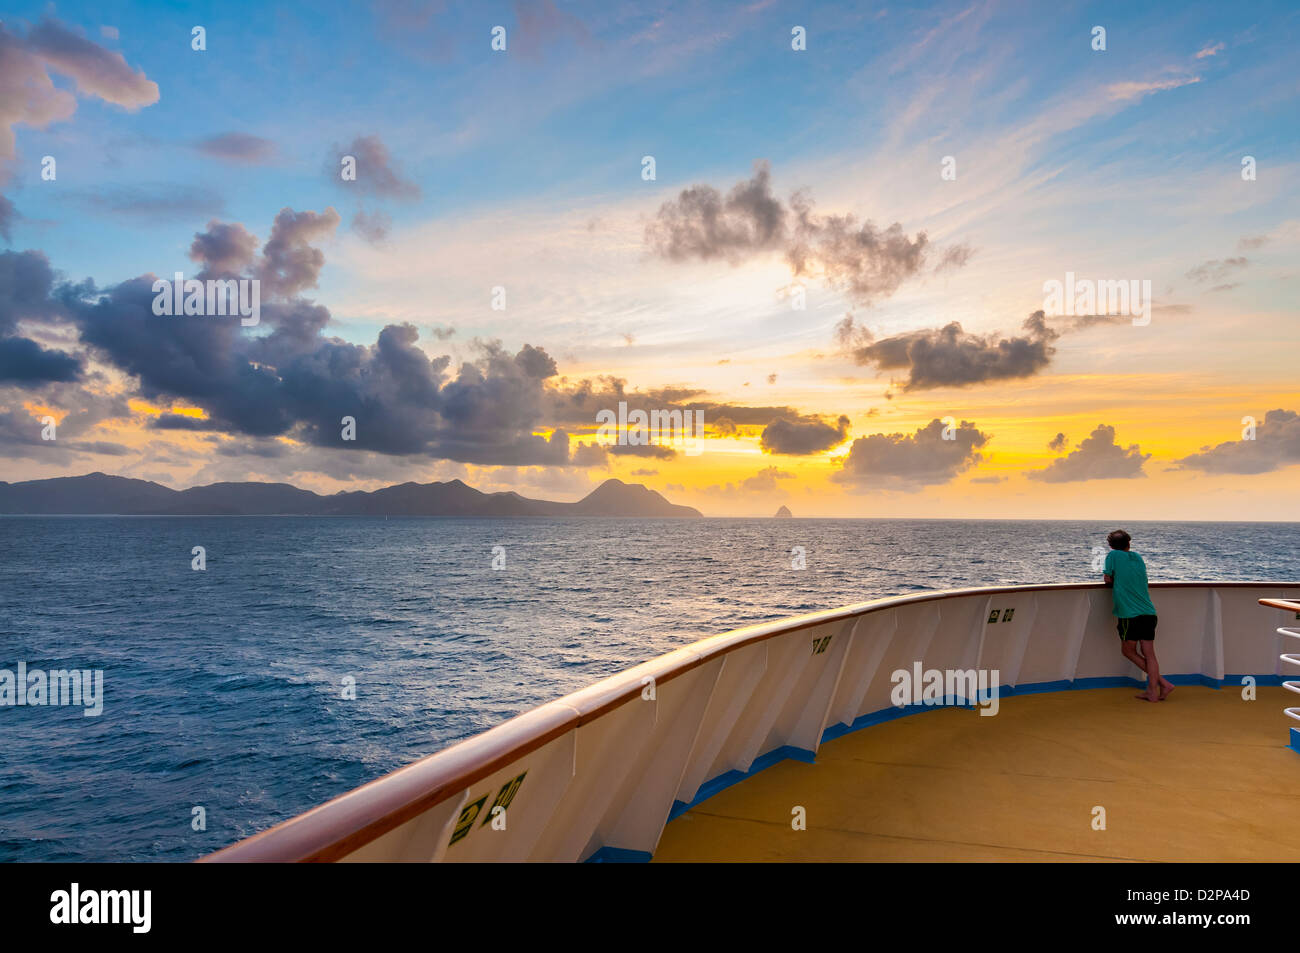 Fort de France Martinica isla caribeña tropical sunrise ver l Imagen De Stock